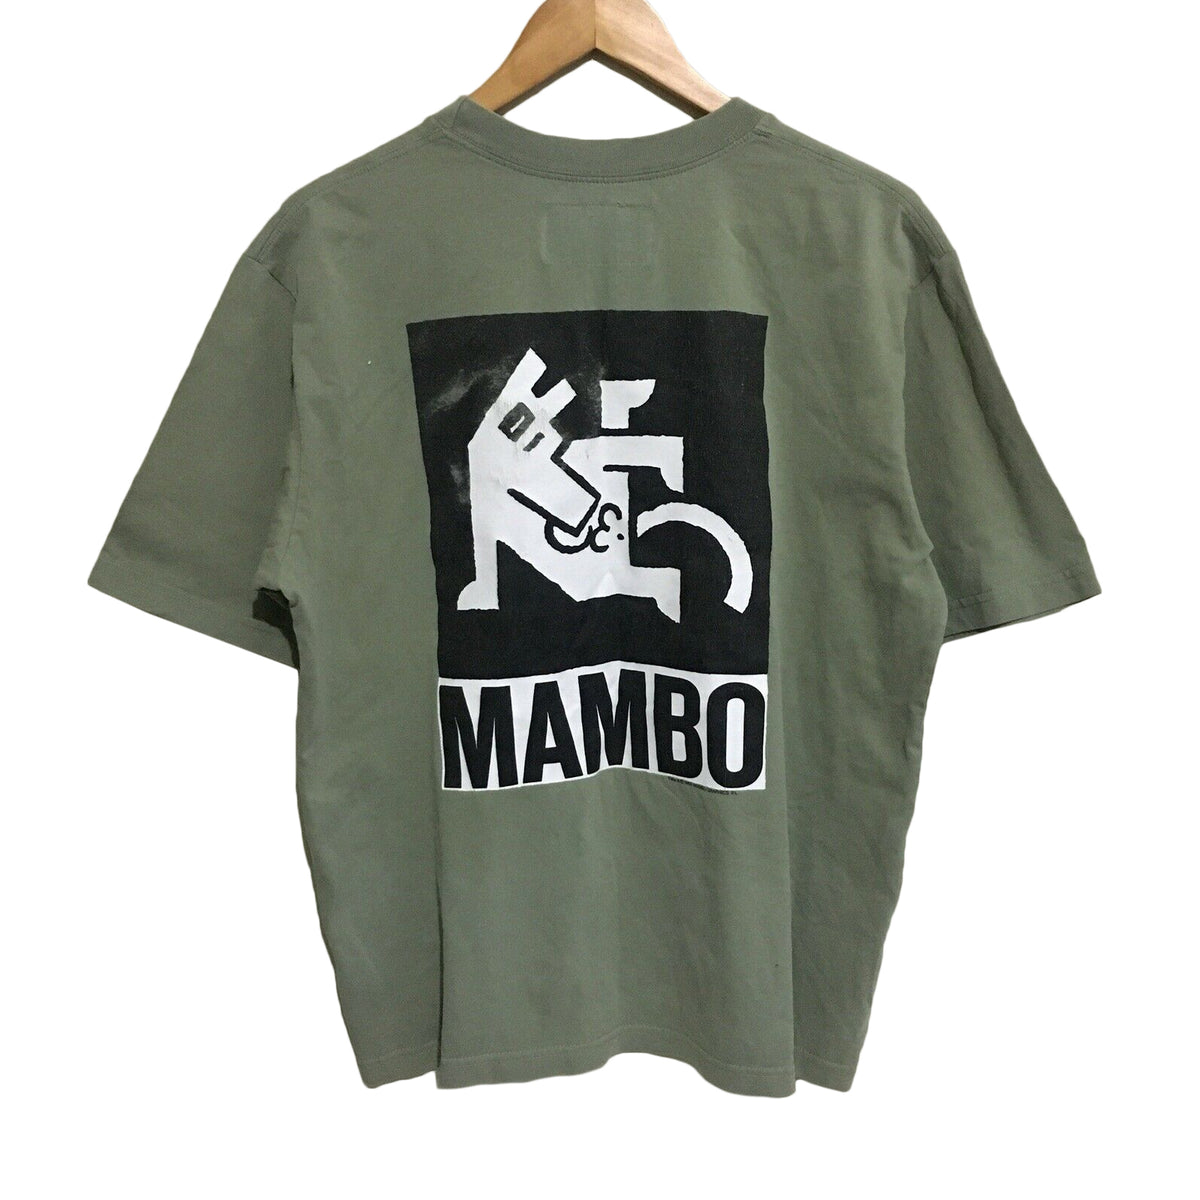 Mambo Farting Dog Vintage Surfwear T-Shirt Mens Large